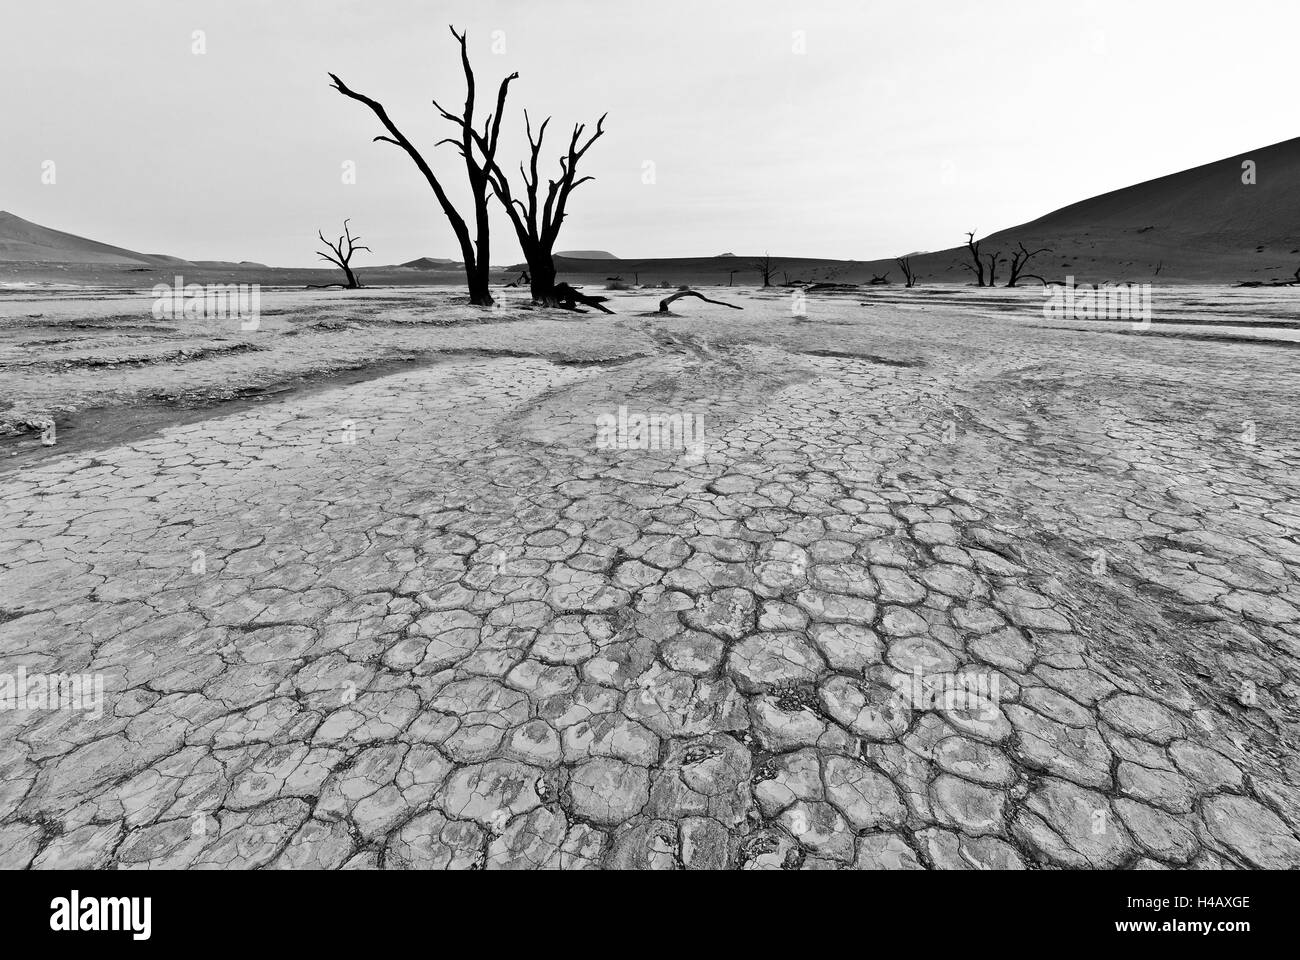 Dry river bed with dead trees, cracked mud in black and white - Stock Image